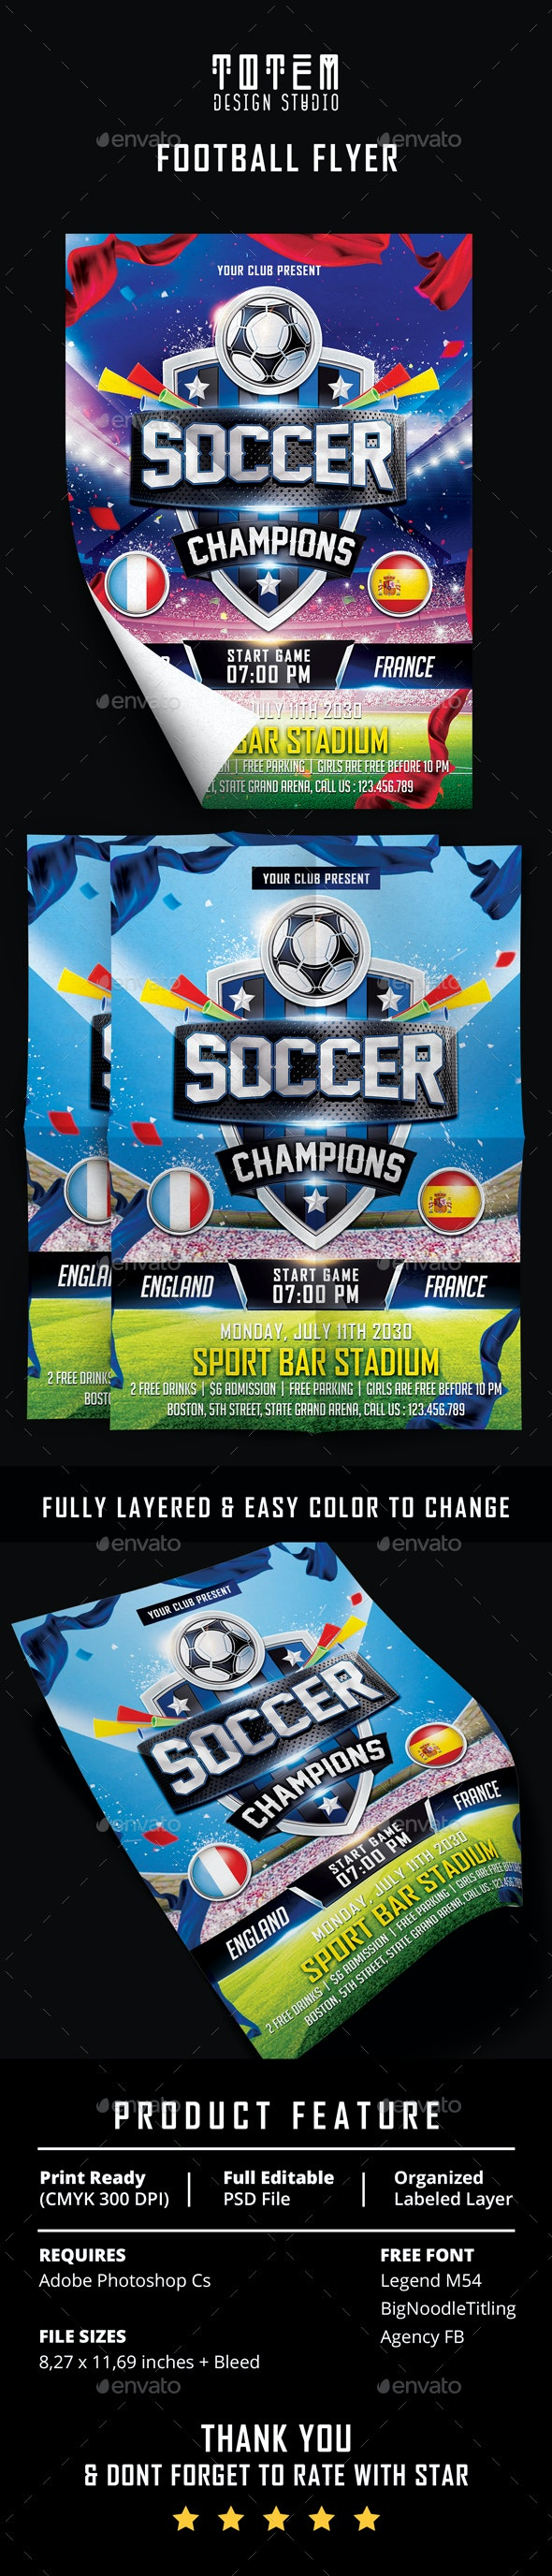 Soccer Champions Flyer - Sports Events